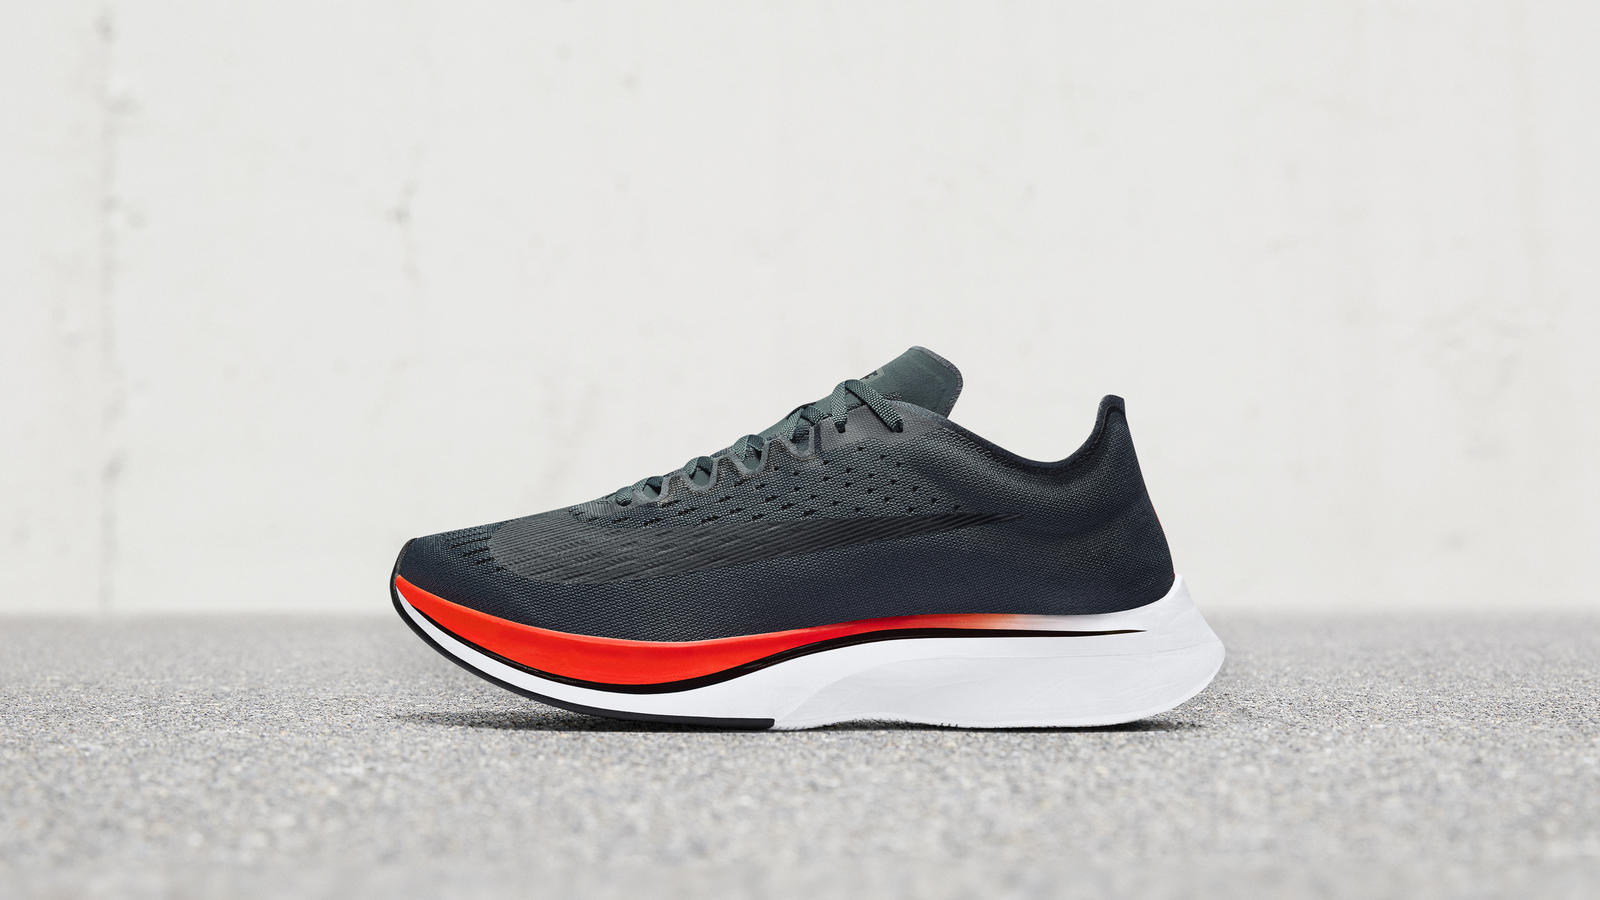 Su17 rn vaporfly 400 lateral hd 1600